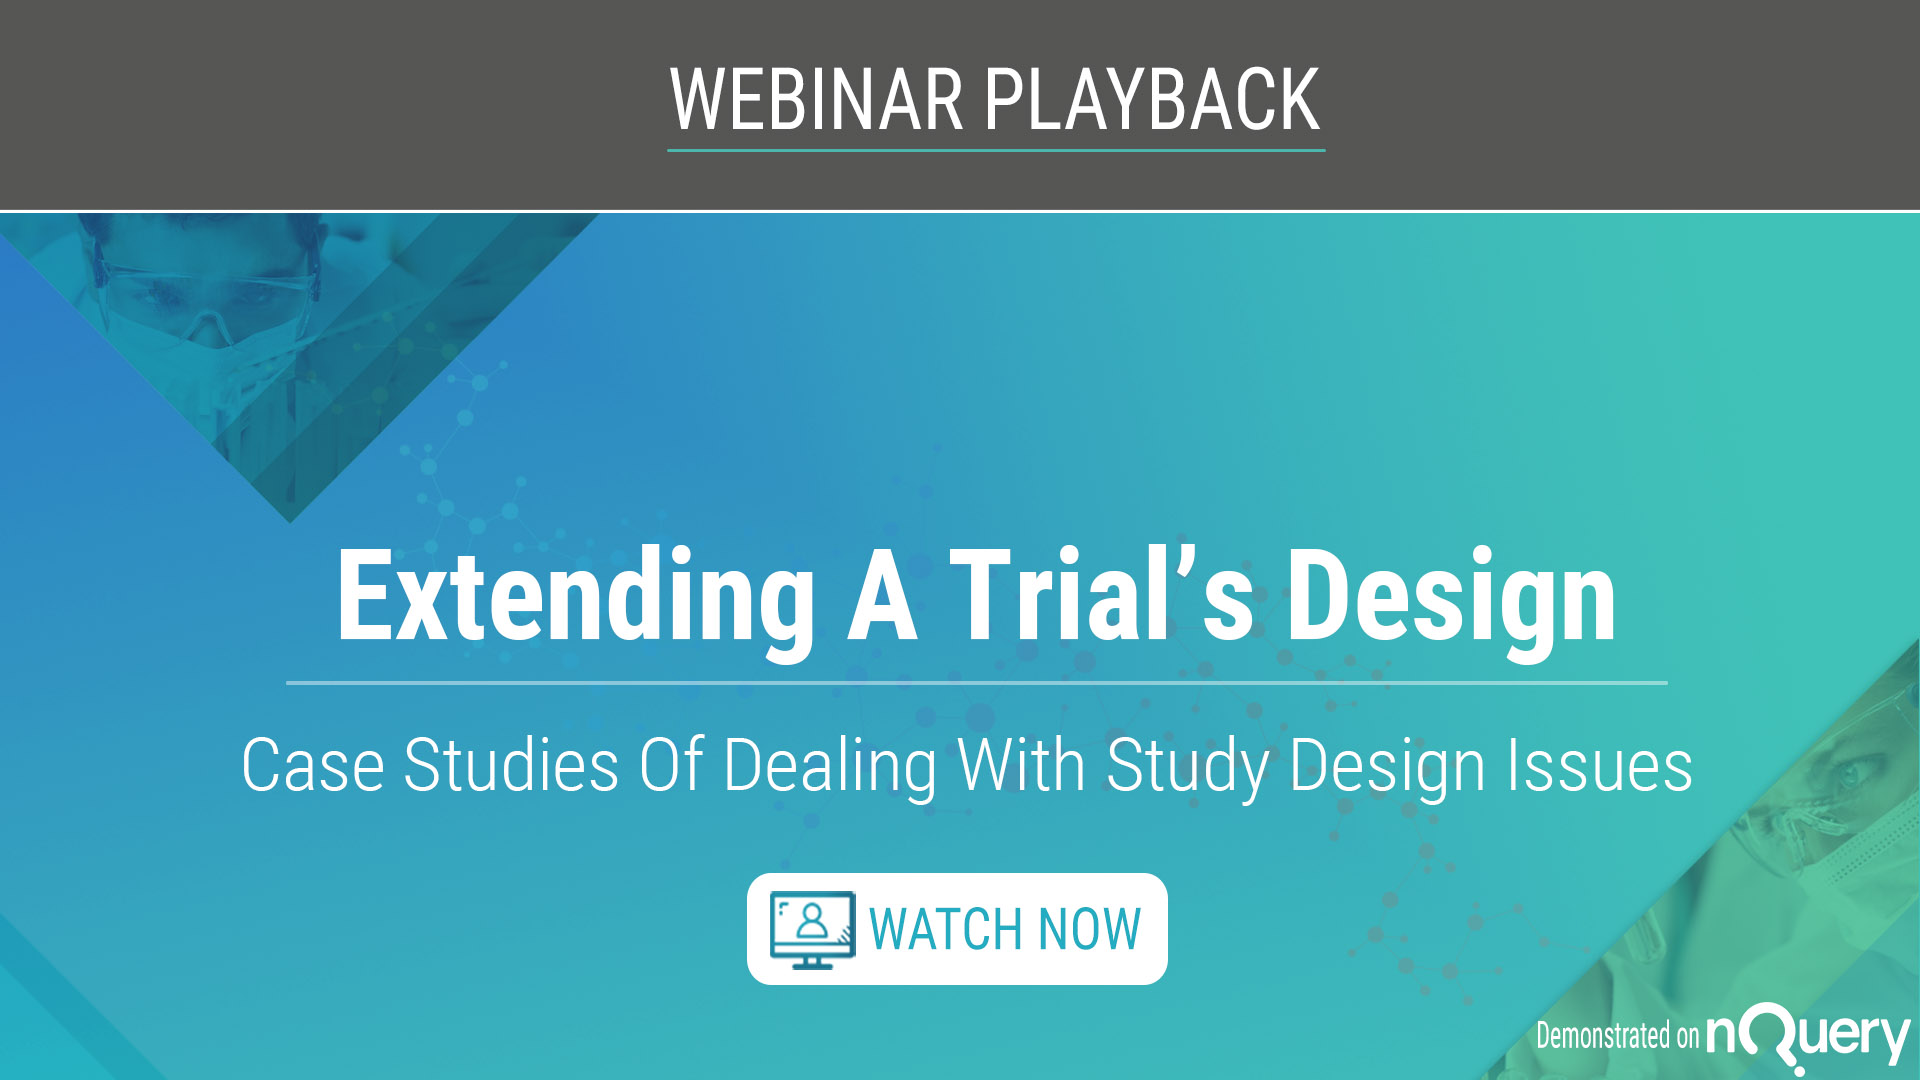 extending-a-trials-design-case-studies-of-dealing-with-study-design-issues-playback